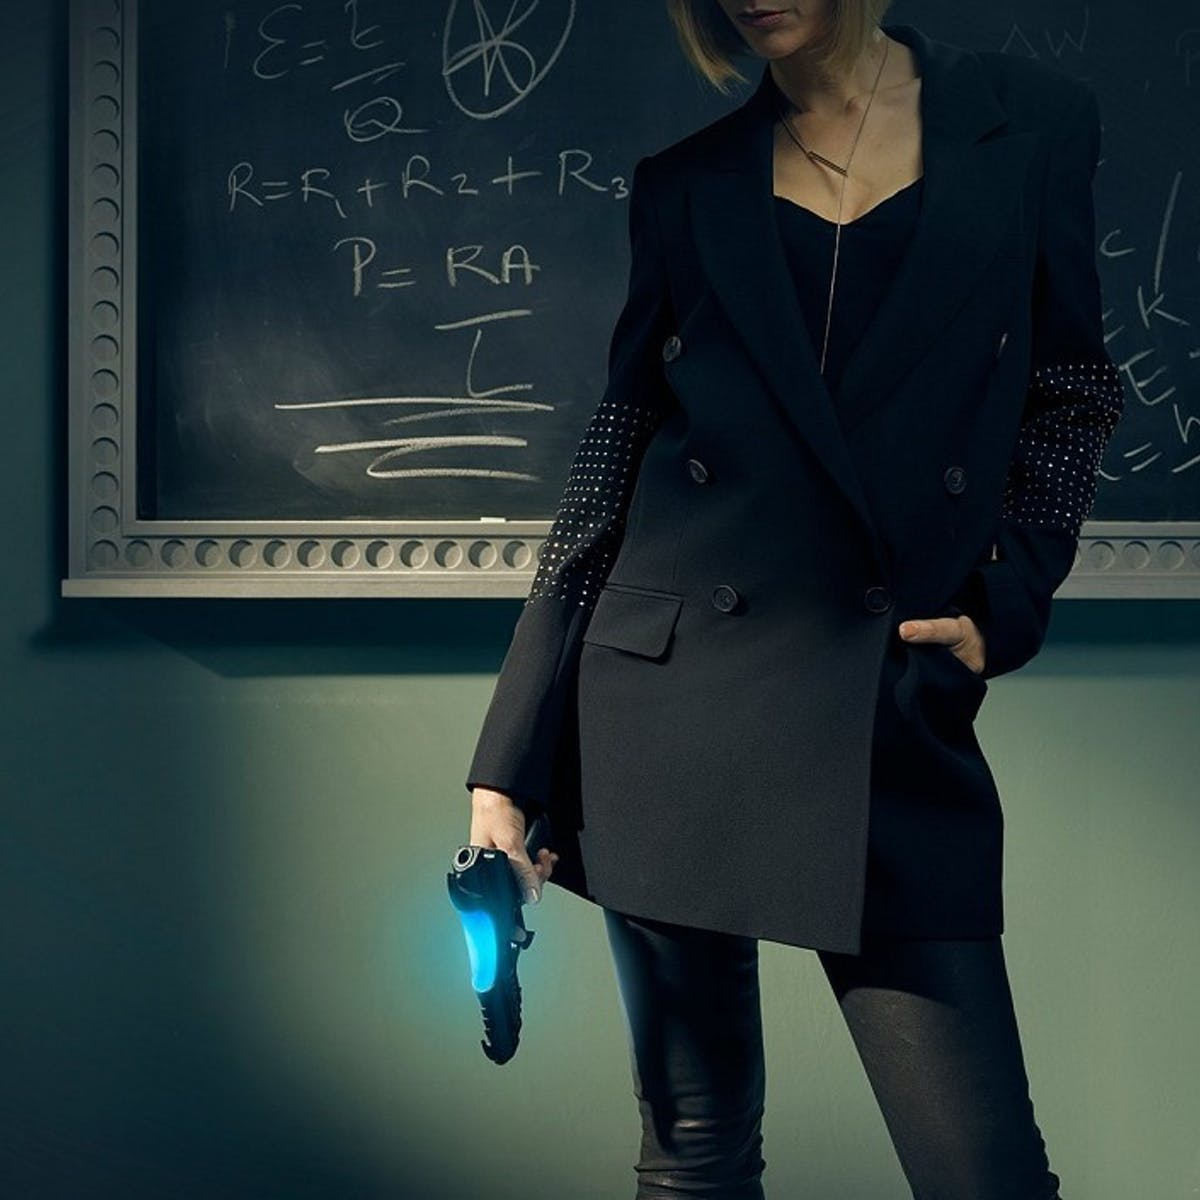 Doctor Who' Spinoff 'Class' has Raygun-Armed Teachers | Inverse